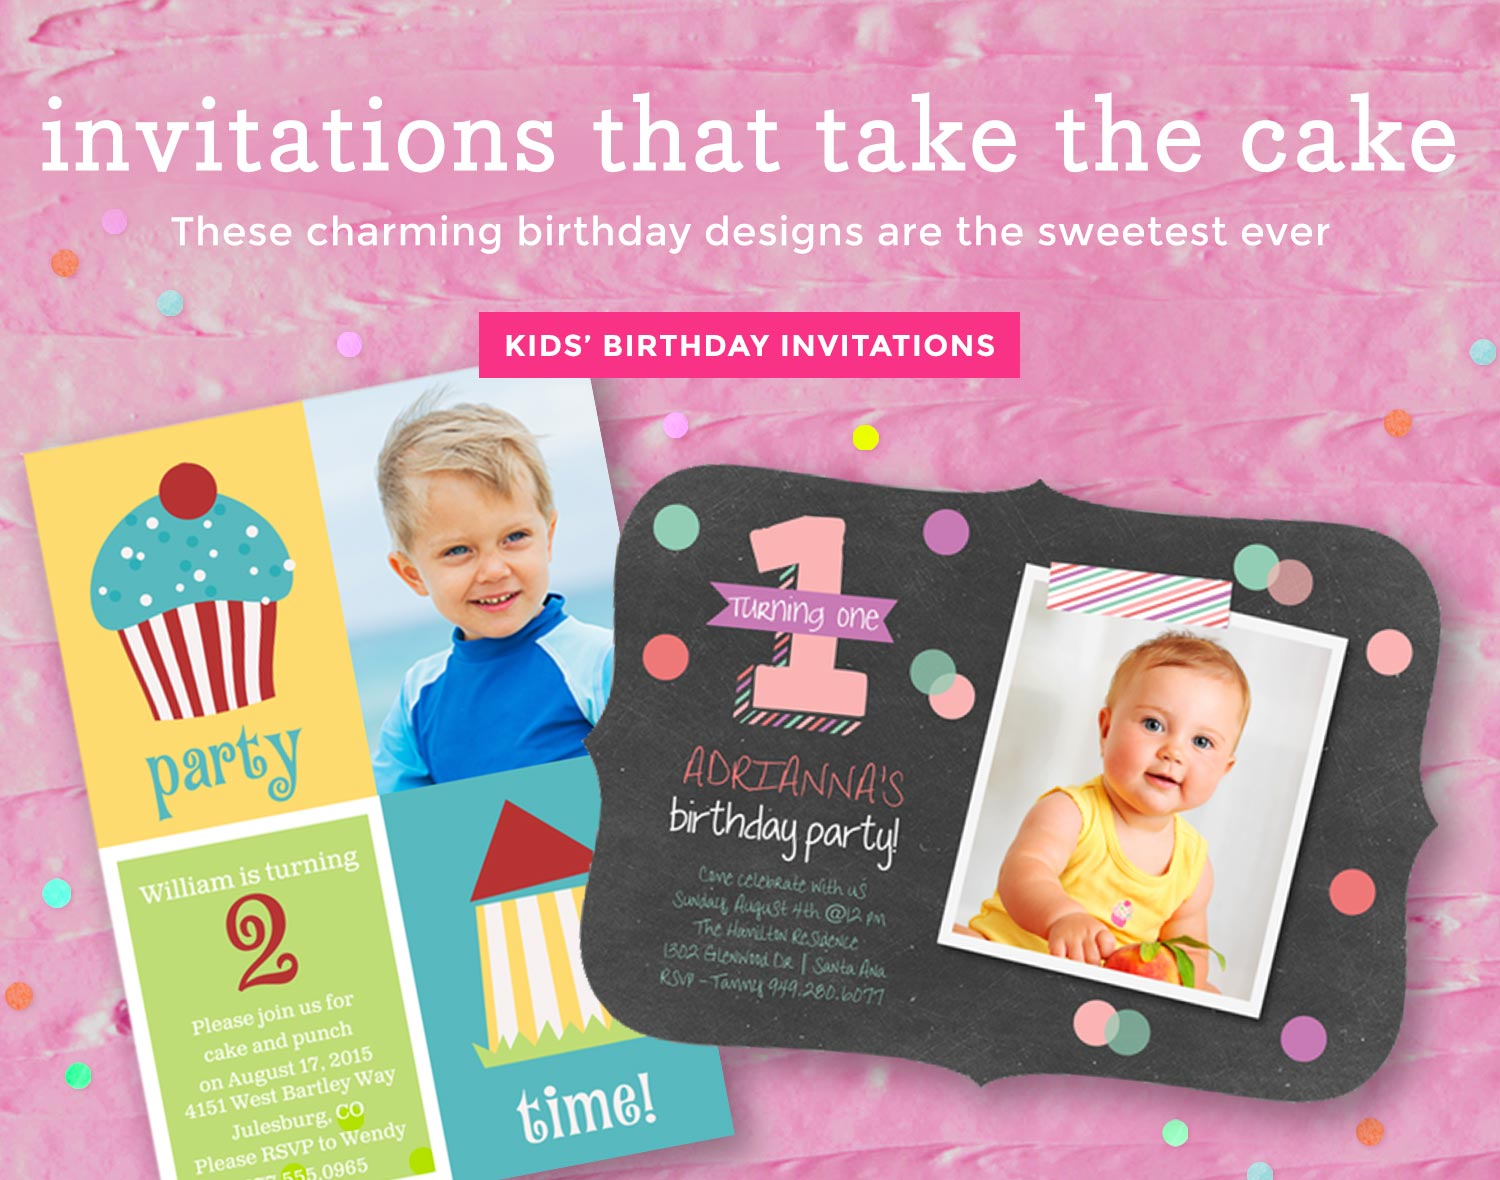 Kid's Birthday Invitations